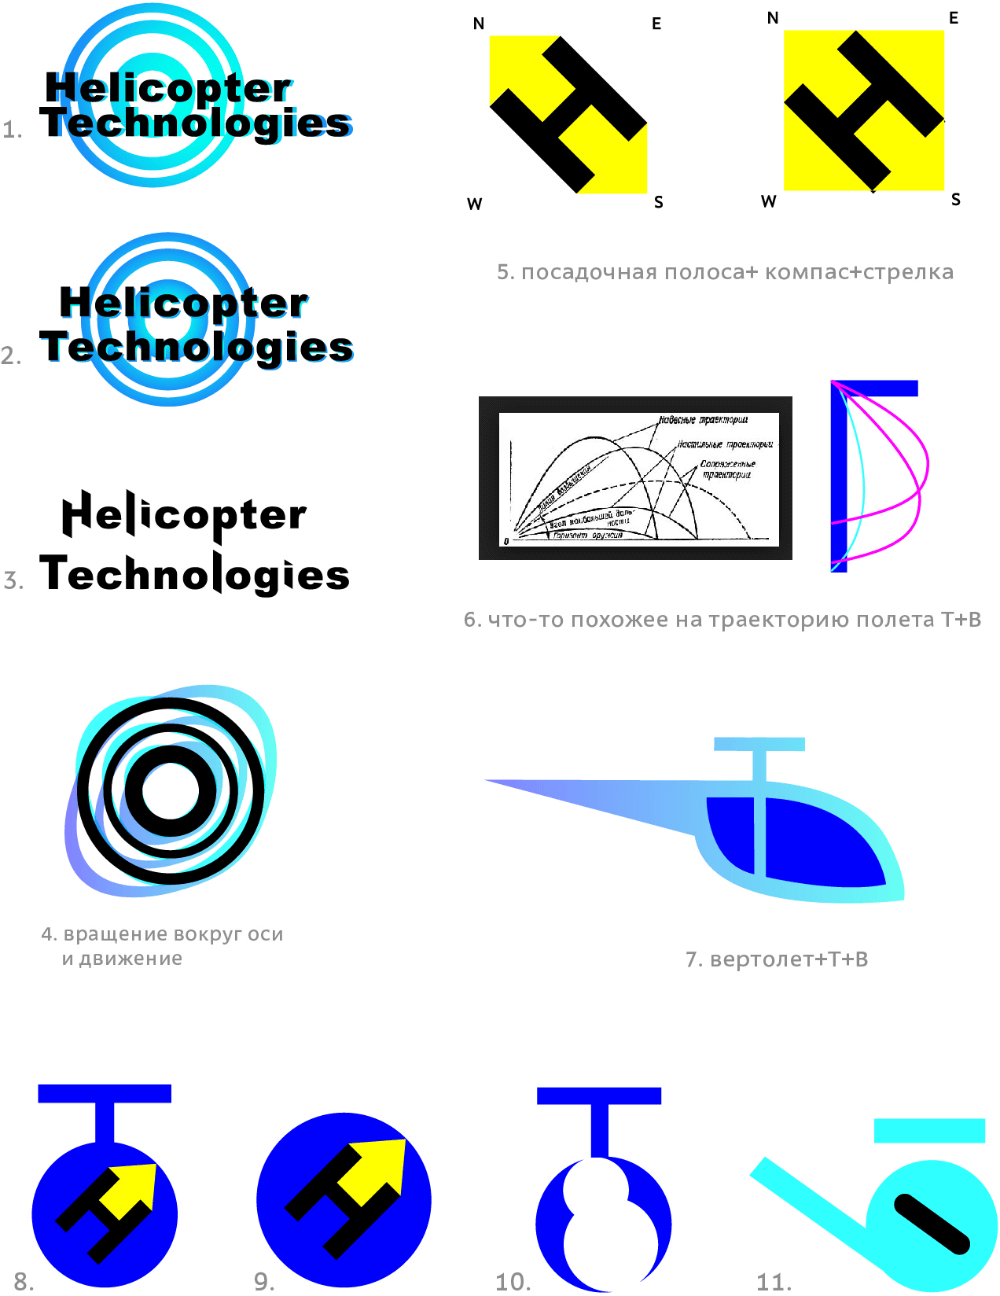 The making of the Helicopter Technologies logo